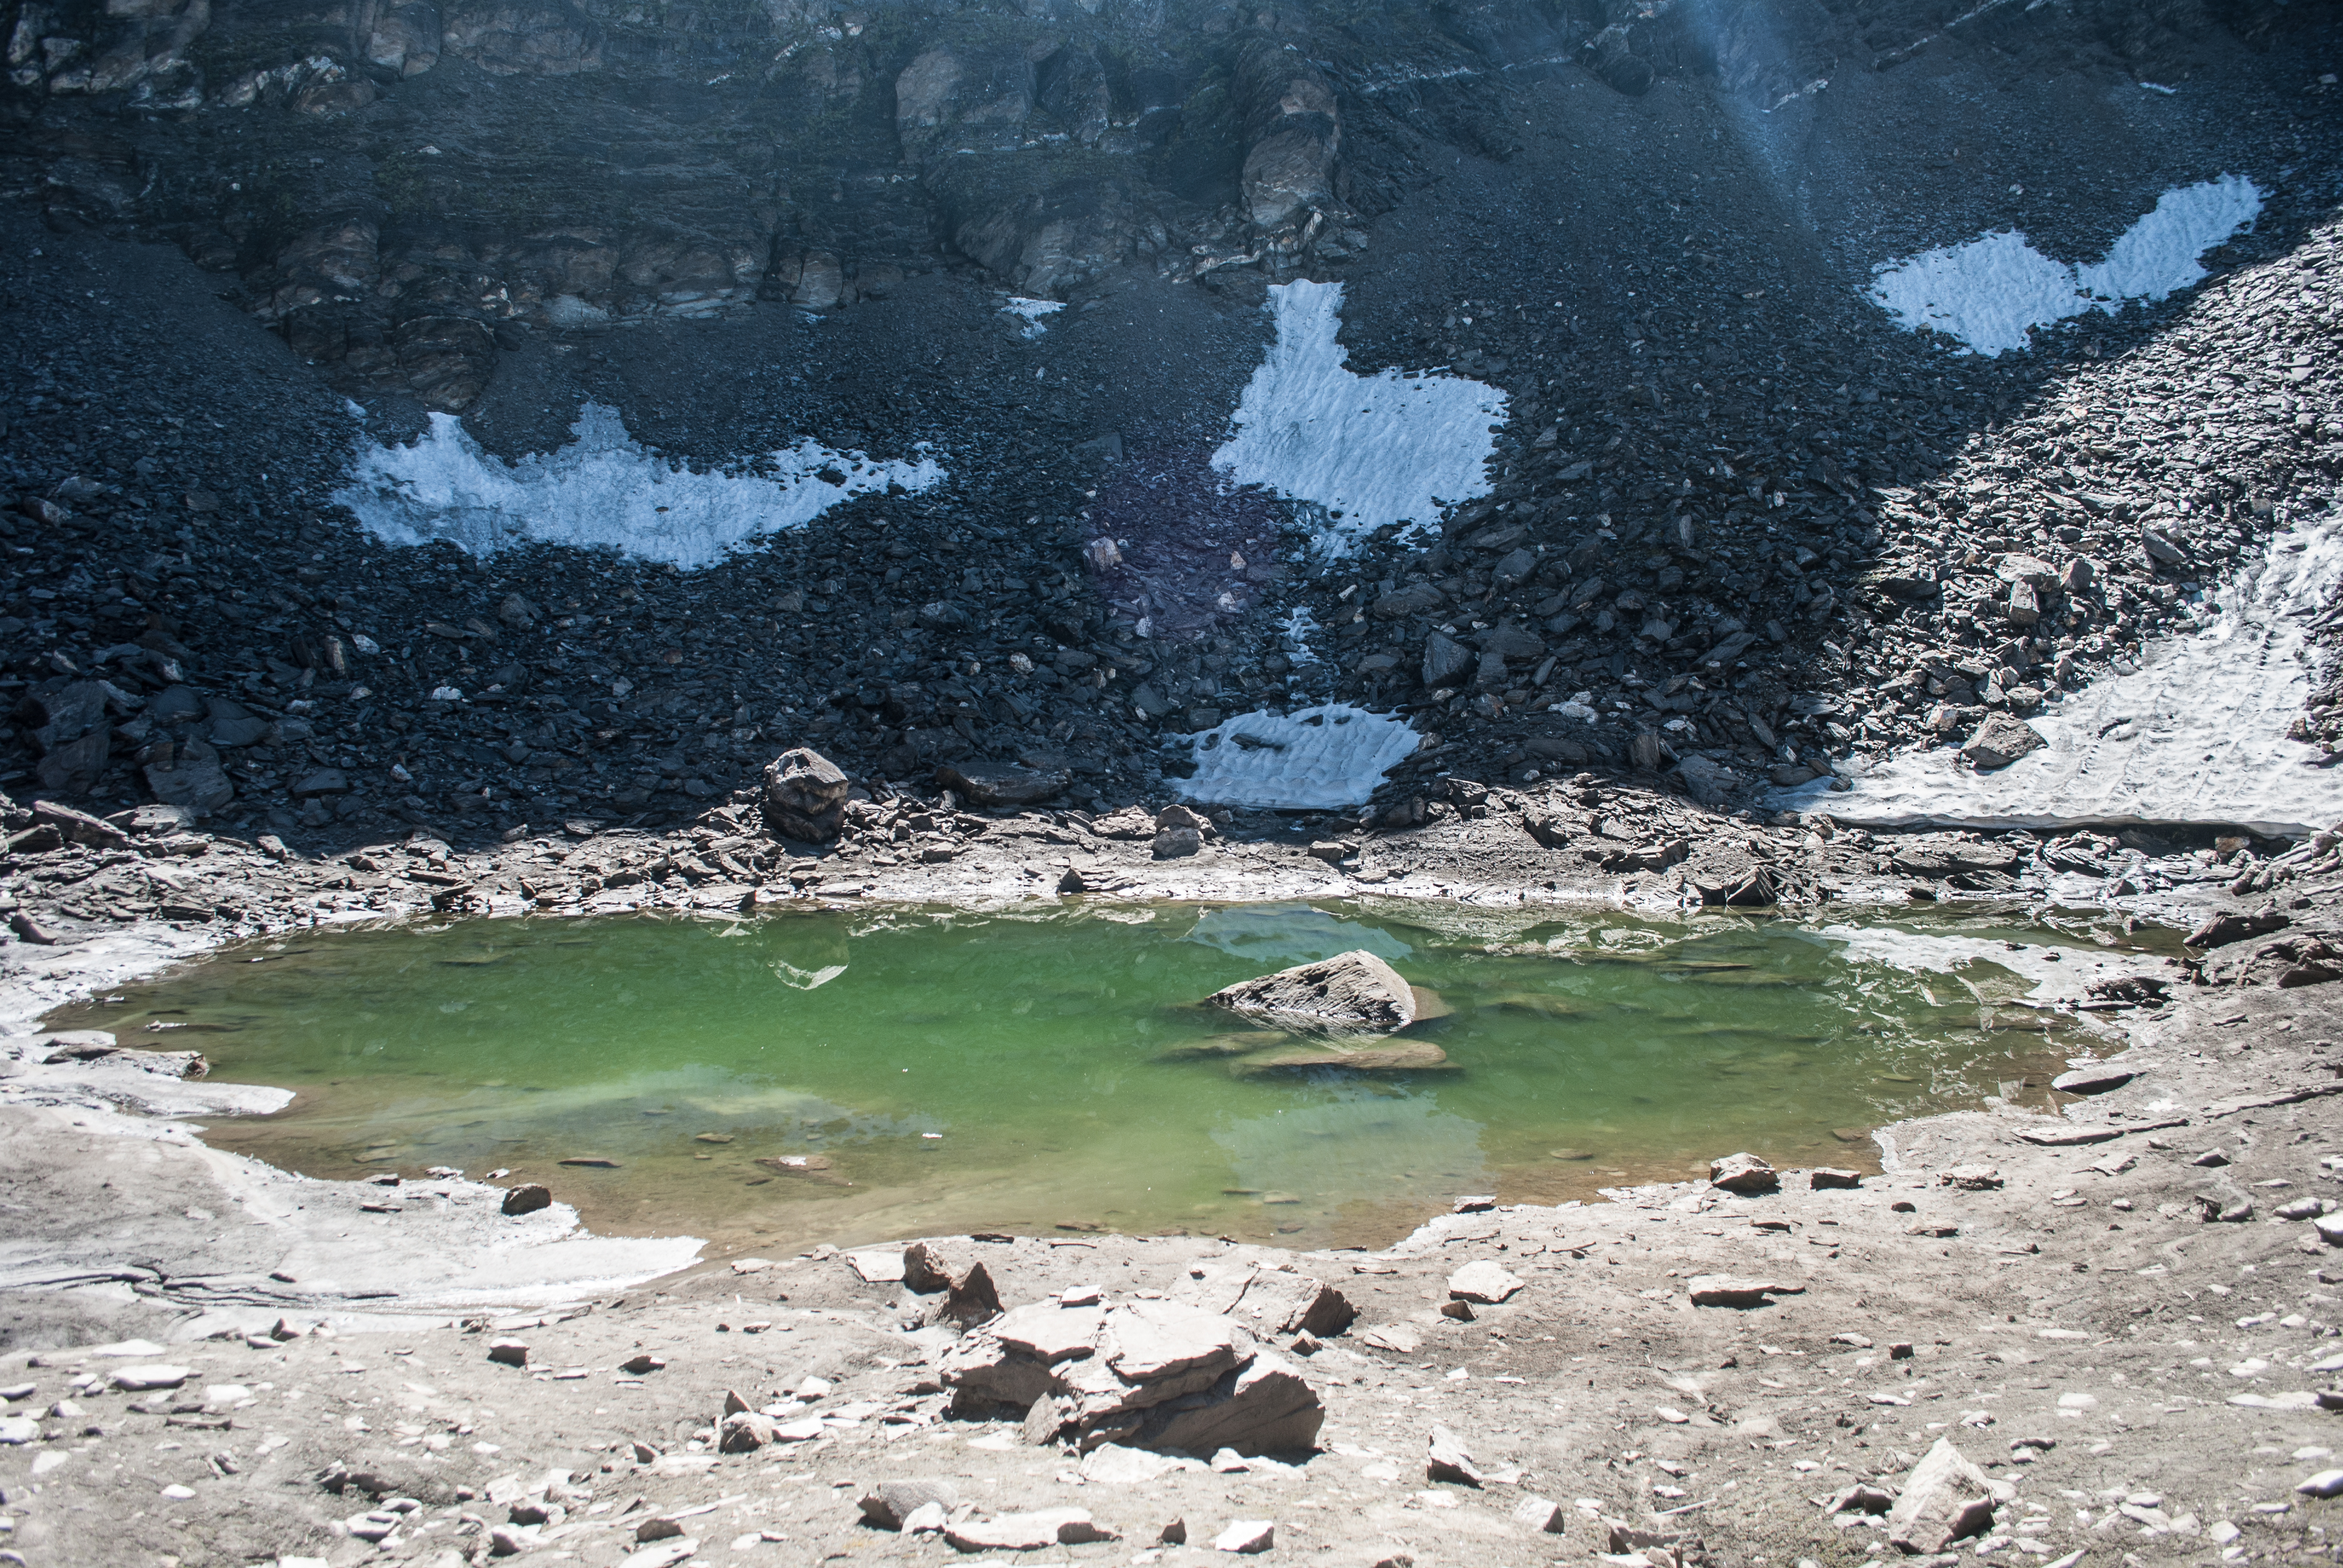 The Roopkund lake